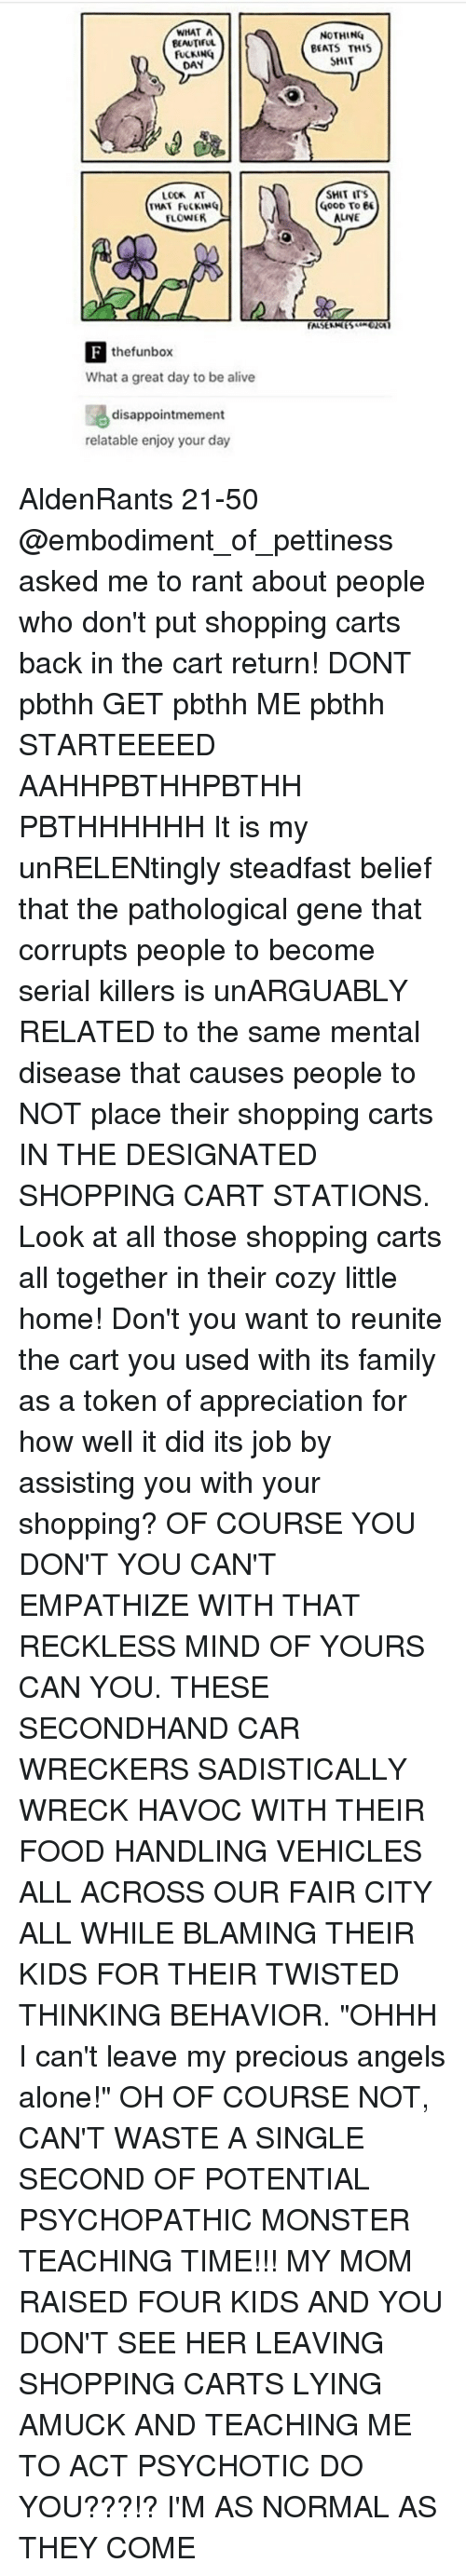 """psychopathic: WHAT A  BEAUTIFUL  DAN  THAT FUCKING  FLOWER  the funbox  What a great day to be alive  disappointmement  relatable enjoy your day  NOTHING  BEATS THIS  SHIT  SHIT ITS  OOD To  EE  ALINE AldenRants 21-50 @embodiment_of_pettiness asked me to rant about people who don't put shopping carts back in the cart return! DONT pbthh GET pbthh ME pbthh STARTEEEED AAHHPBTHHPBTHH PBTHHHHHH It is my unRELENtingly steadfast belief that the pathological gene that corrupts people to become serial killers is unARGUABLY RELATED to the same mental disease that causes people to NOT place their shopping carts IN THE DESIGNATED SHOPPING CART STATIONS. Look at all those shopping carts all together in their cozy little home! Don't you want to reunite the cart you used with its family as a token of appreciation for how well it did its job by assisting you with your shopping? OF COURSE YOU DON'T YOU CAN'T EMPATHIZE WITH THAT RECKLESS MIND OF YOURS CAN YOU. THESE SECONDHAND CAR WRECKERS SADISTICALLY WRECK HAVOC WITH THEIR FOOD HANDLING VEHICLES ALL ACROSS OUR FAIR CITY ALL WHILE BLAMING THEIR KIDS FOR THEIR TWISTED THINKING BEHAVIOR. """"OHHH I can't leave my precious angels alone!"""" OH OF COURSE NOT, CAN'T WASTE A SINGLE SECOND OF POTENTIAL PSYCHOPATHIC MONSTER TEACHING TIME!!! MY MOM RAISED FOUR KIDS AND YOU DON'T SEE HER LEAVING SHOPPING CARTS LYING AMUCK AND TEACHING ME TO ACT PSYCHOTIC DO YOU???!? I'M AS NORMAL AS THEY COME"""